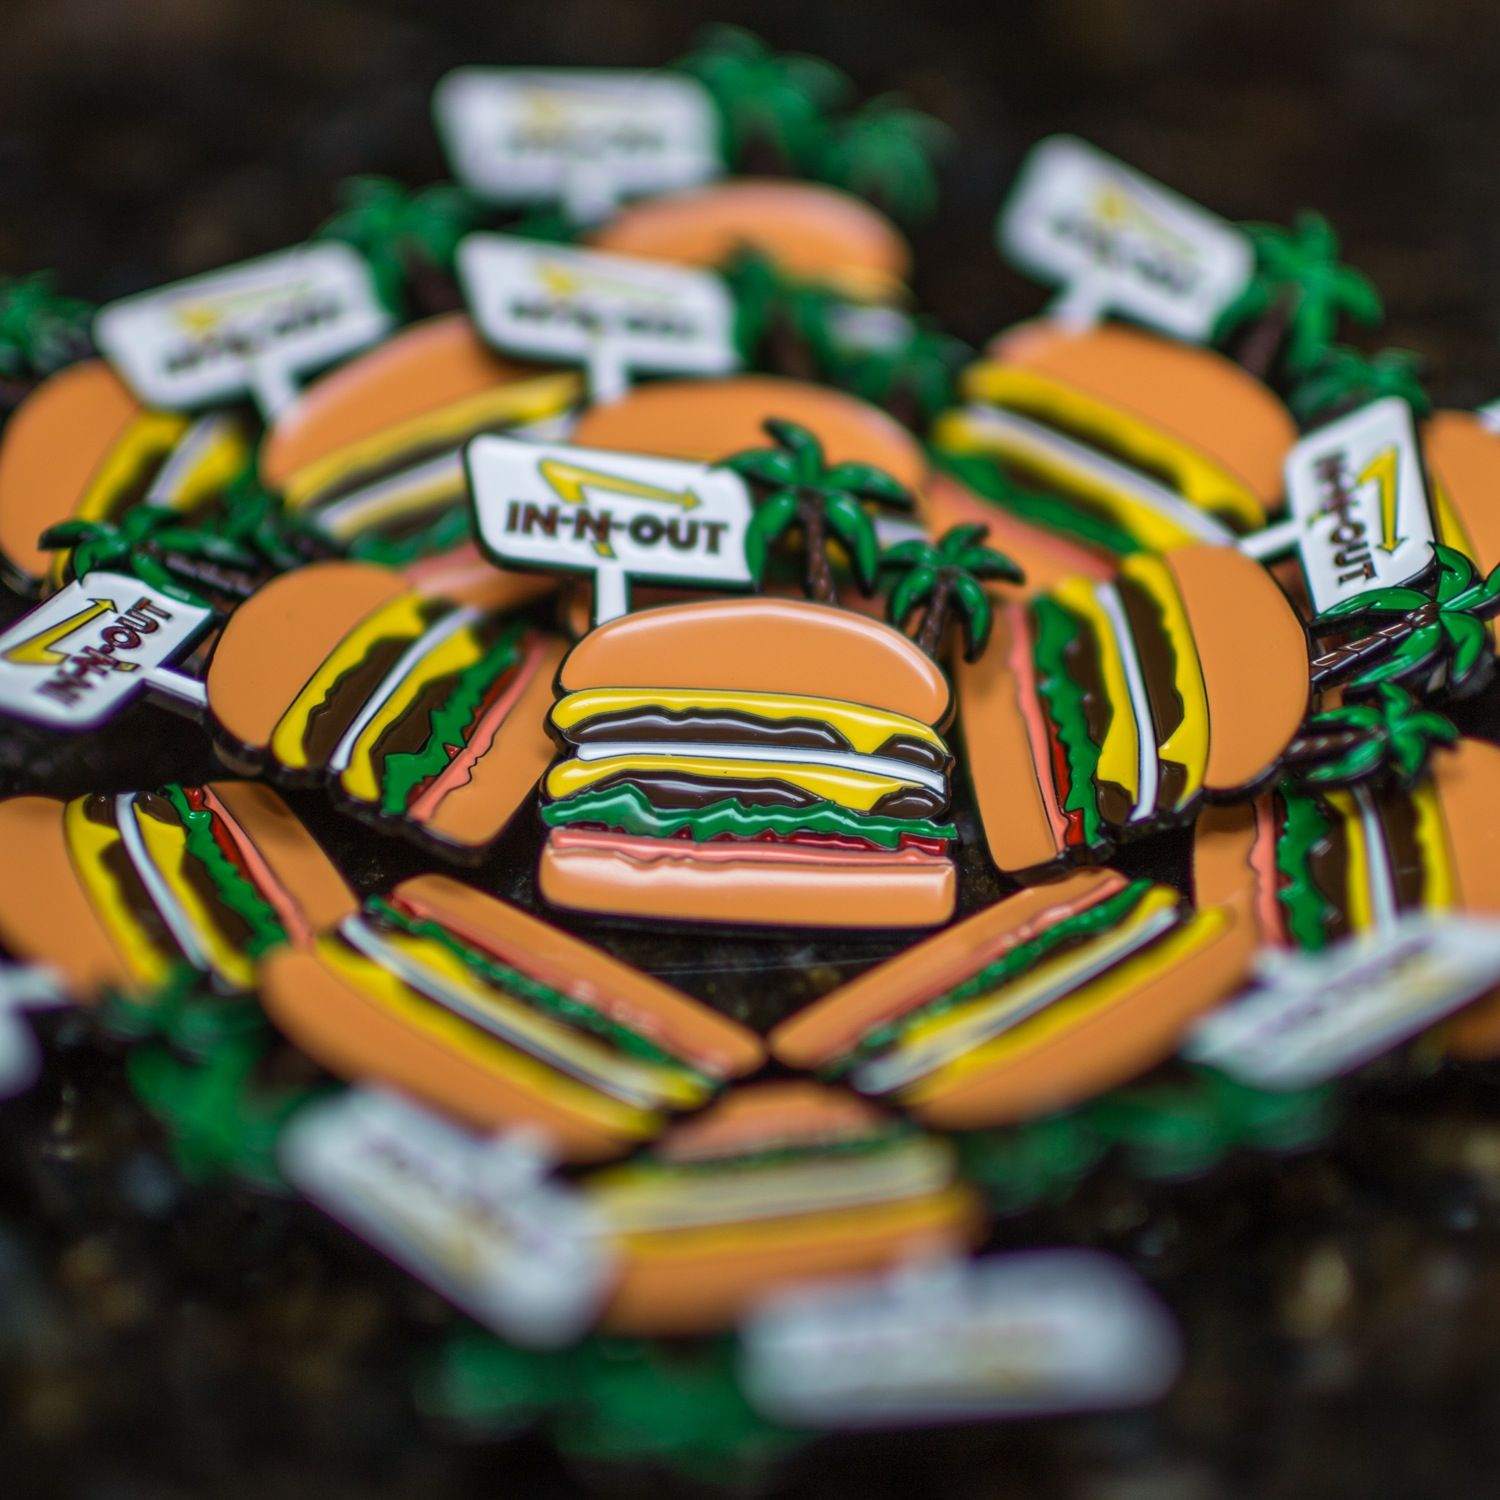 Soft Enamel In-n-Out Pin - $9.99 !